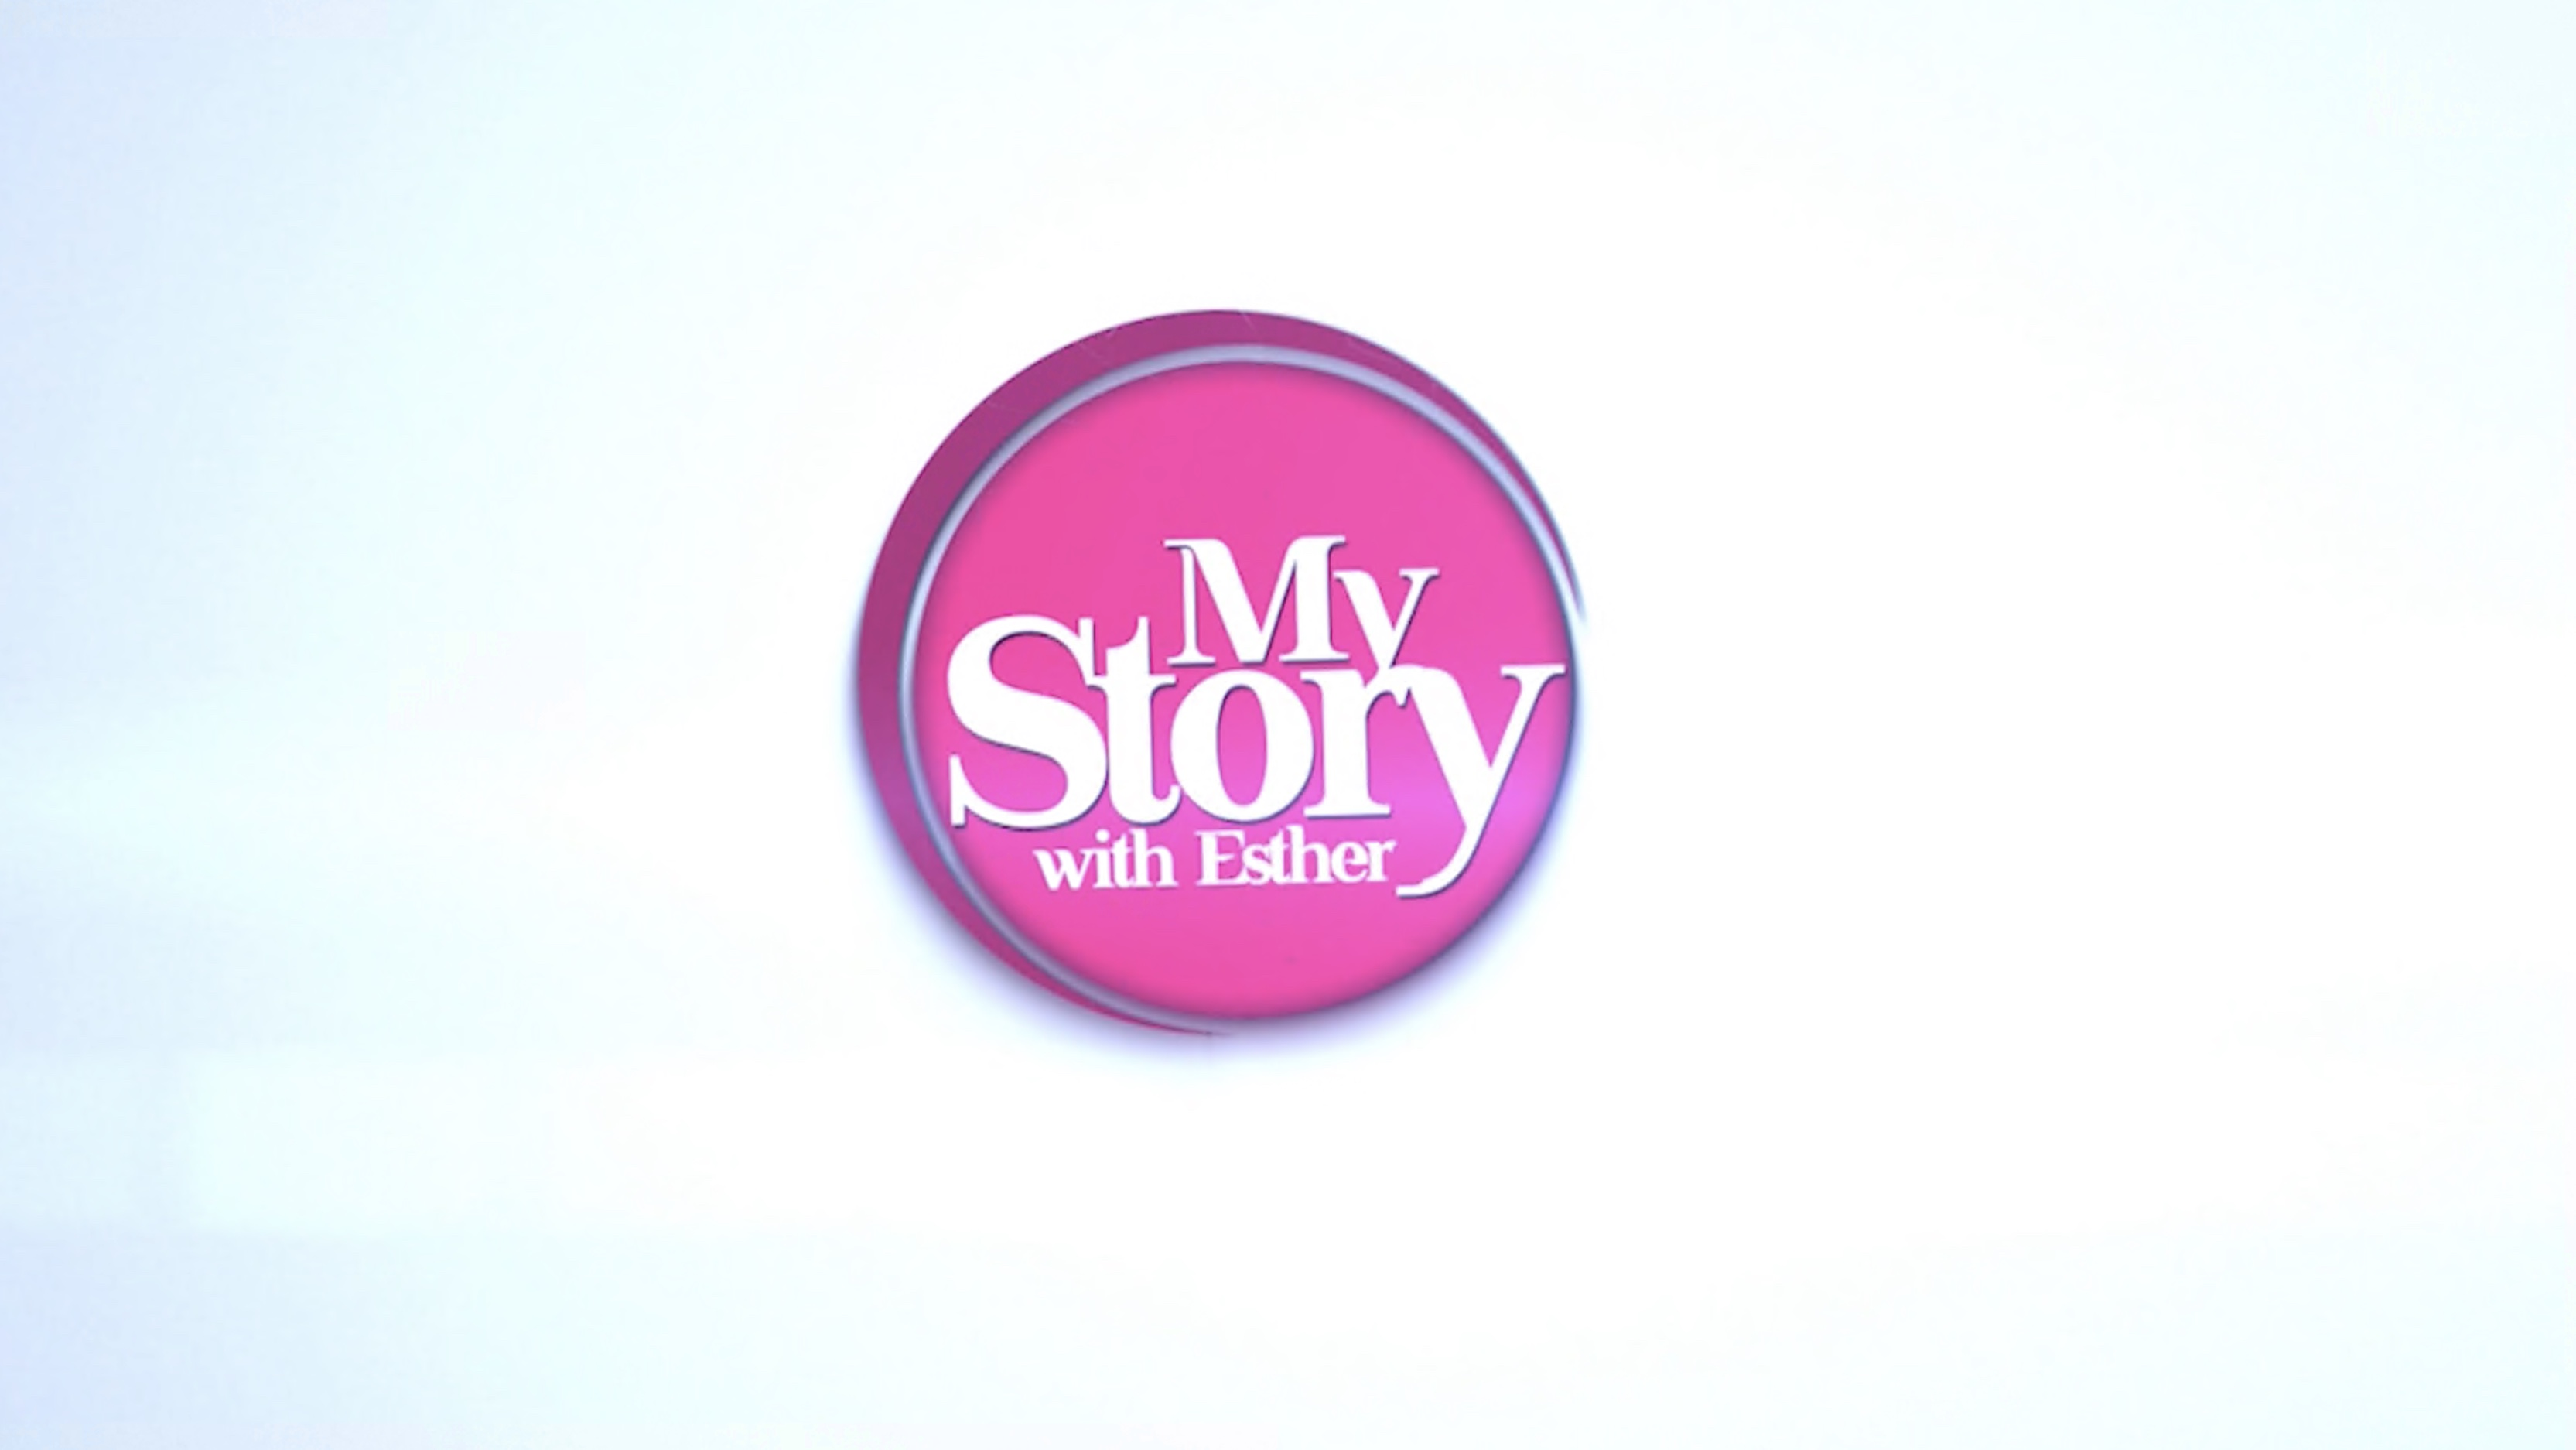 My Story with Esther